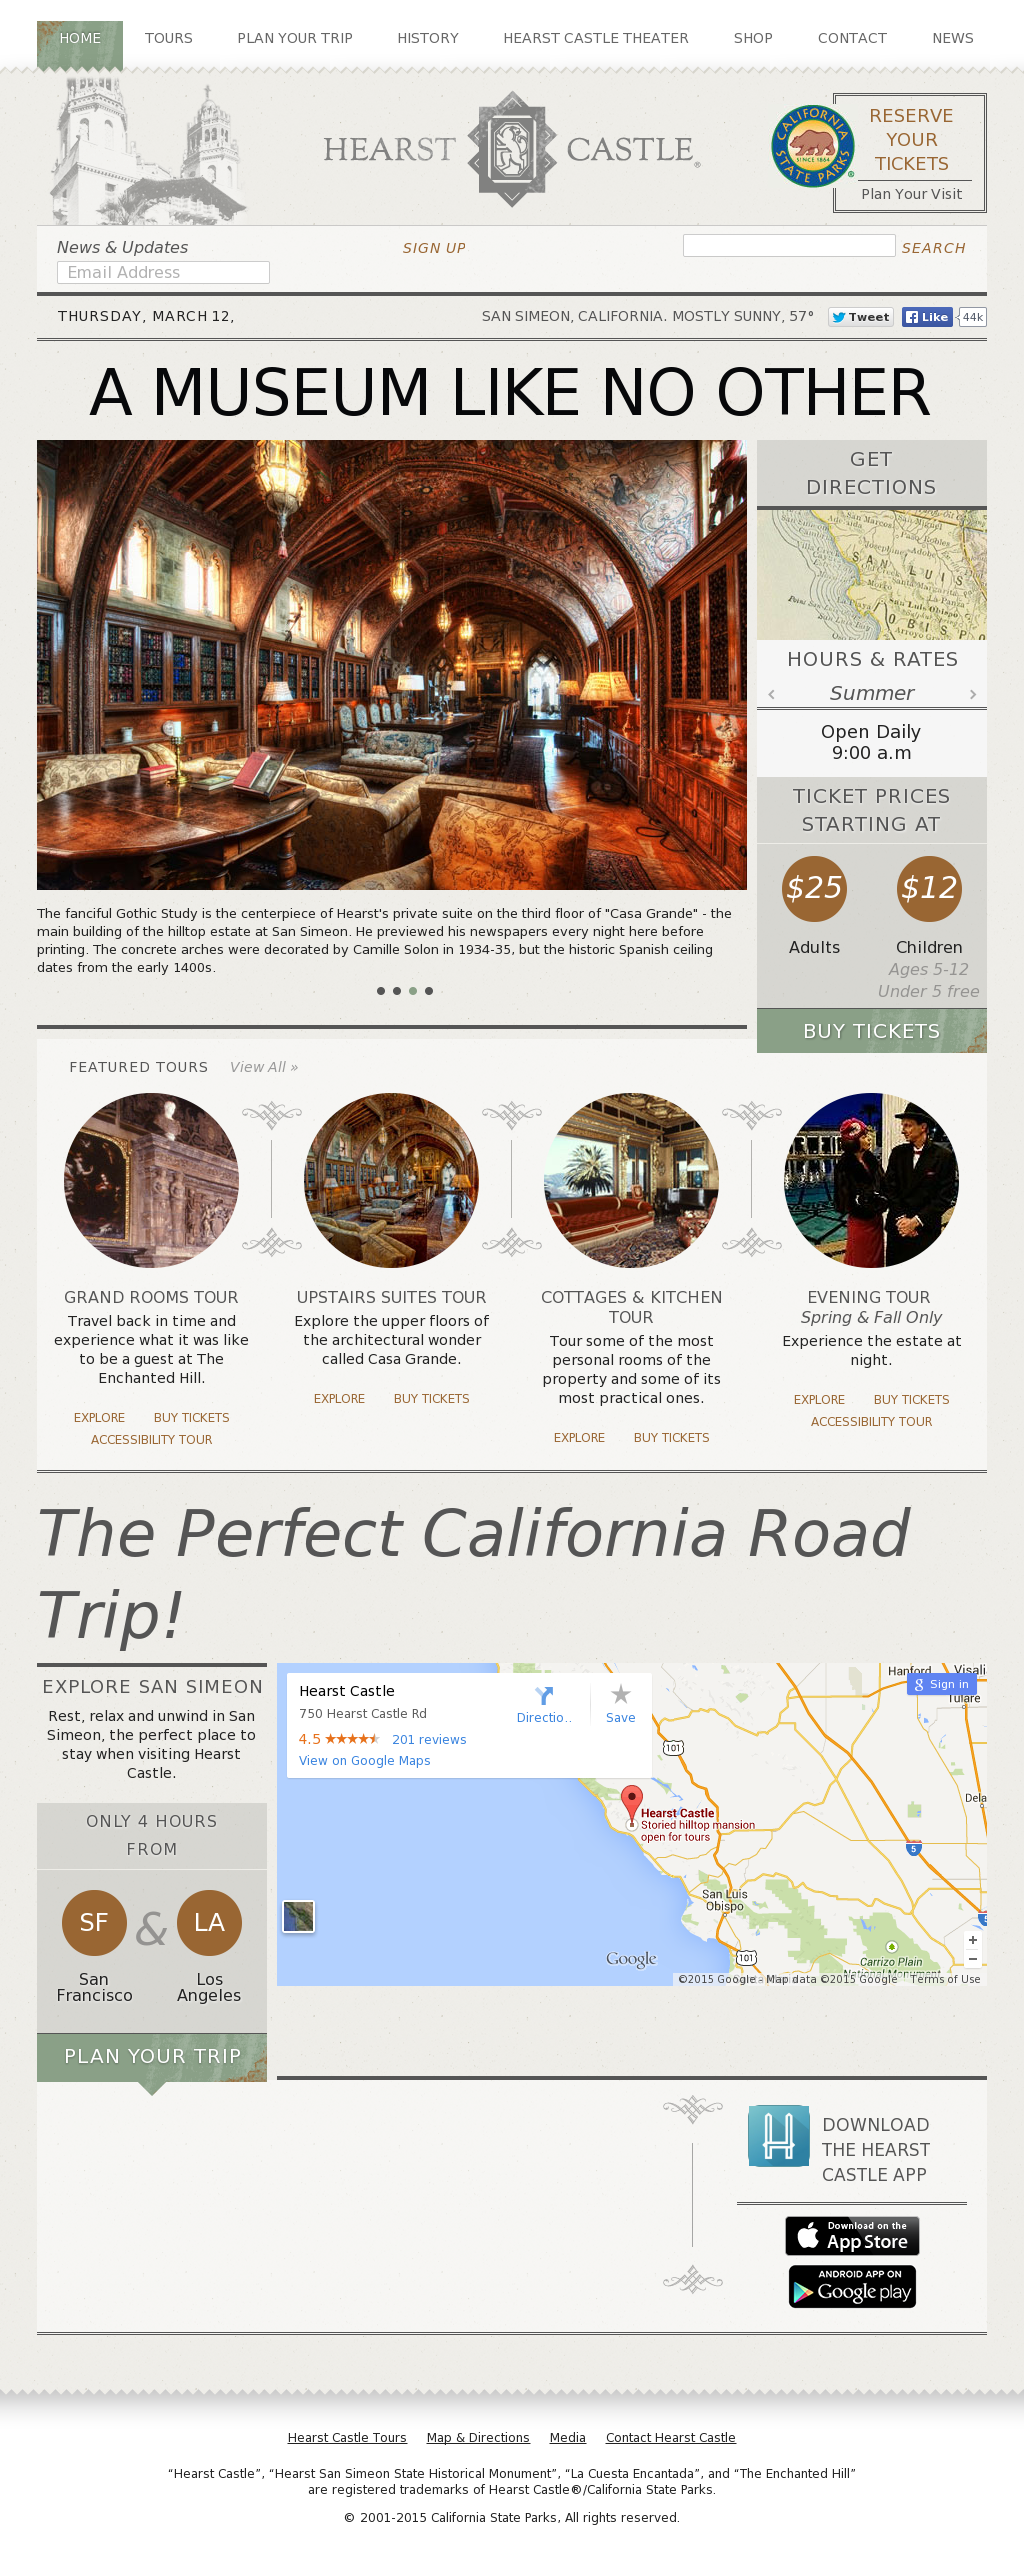 Hearst Castle California Map.Hearst Castle Historical Mnmnt Competitors Revenue And Employees